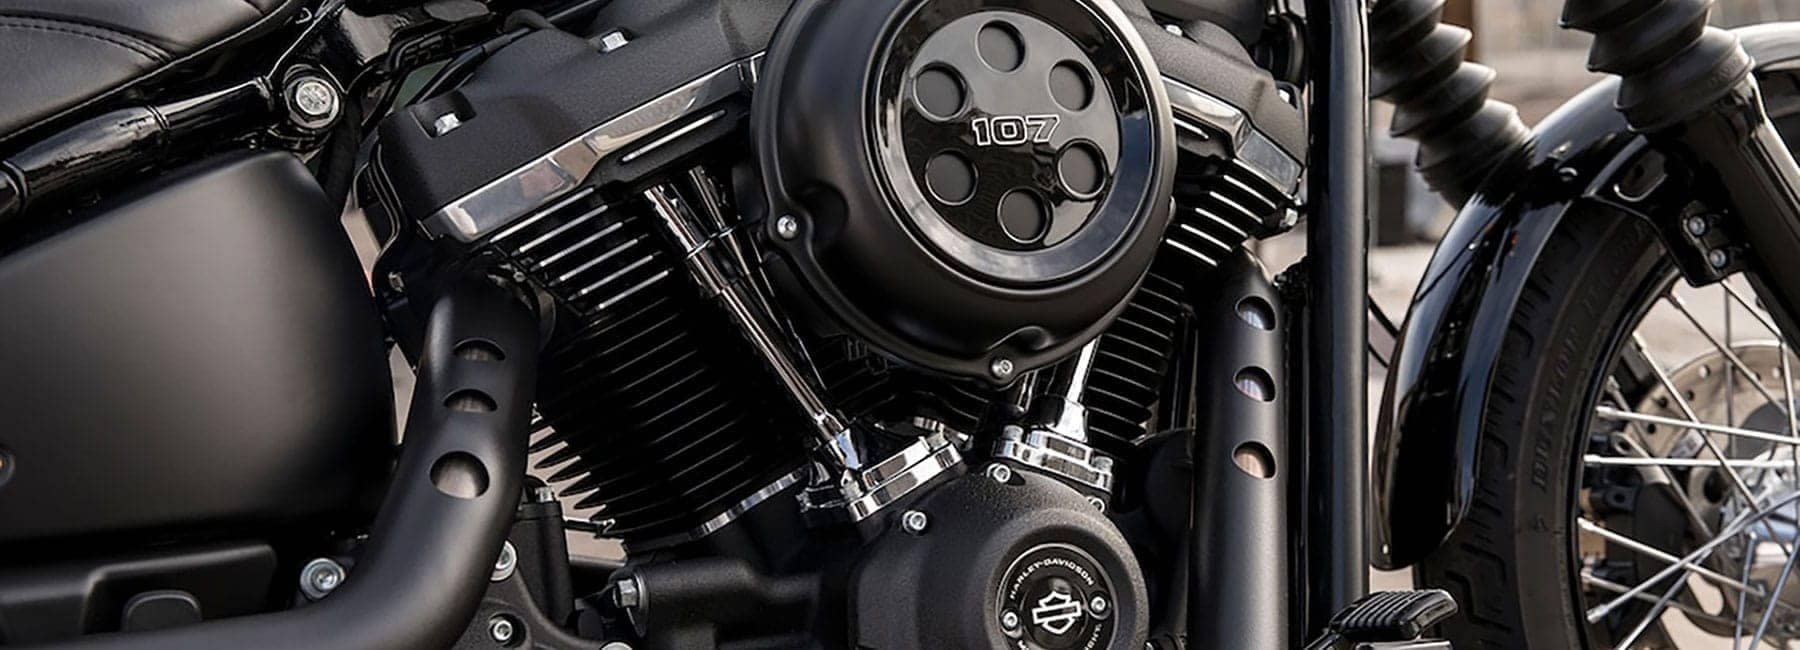 2019 Harley-Davidson Softail Engine